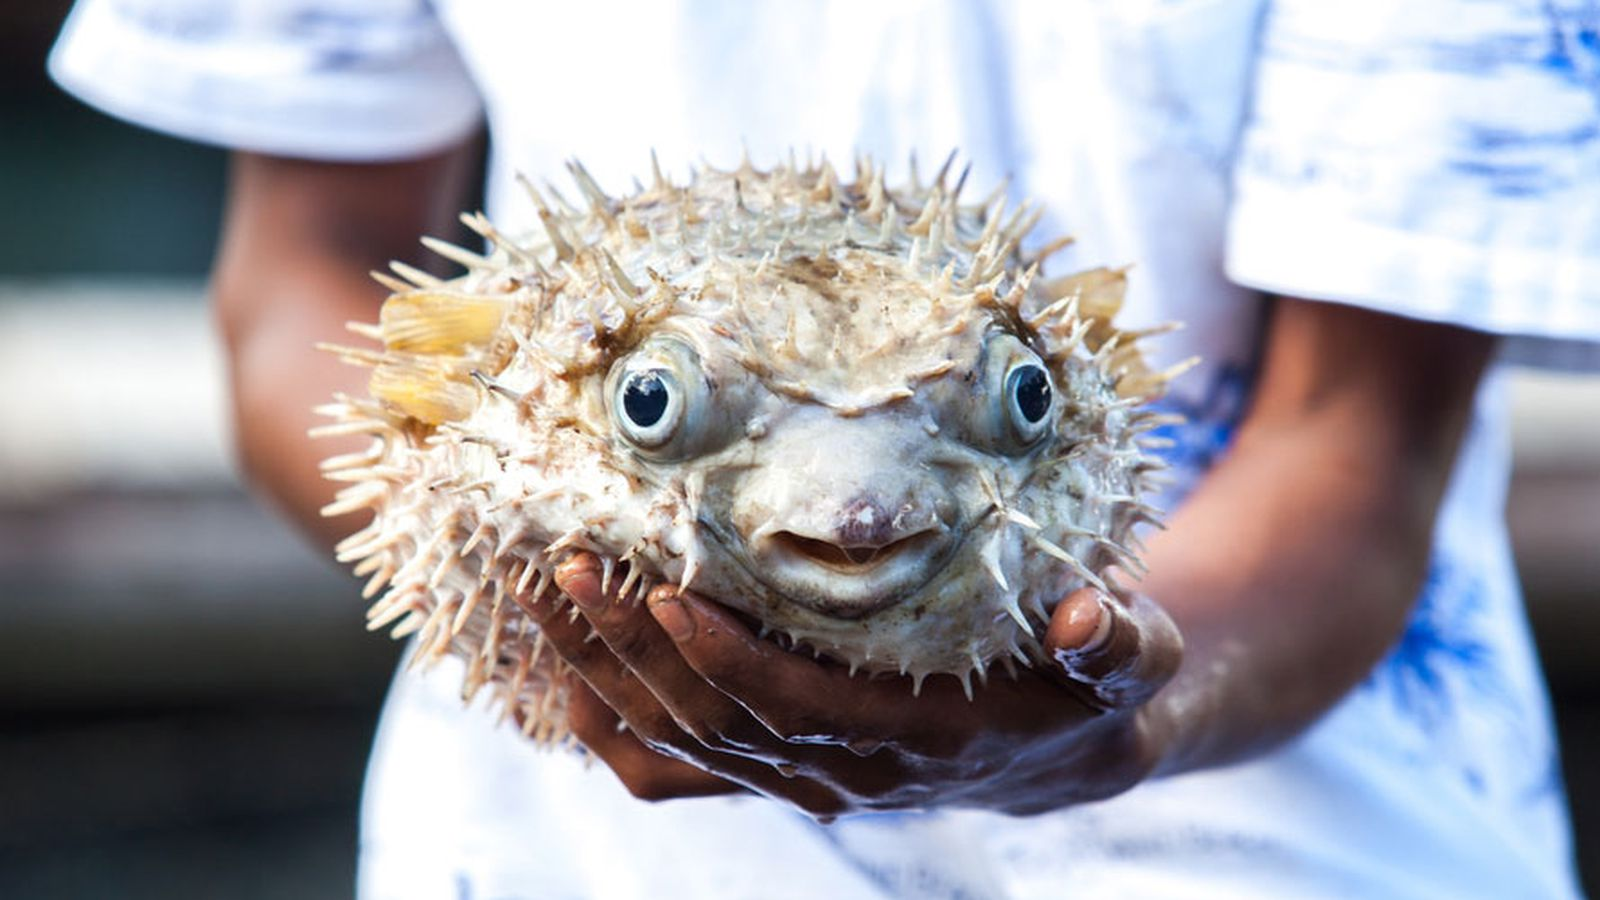 Five men hospitalized after eating poisonous fugu eater for Poisonous fish to eat